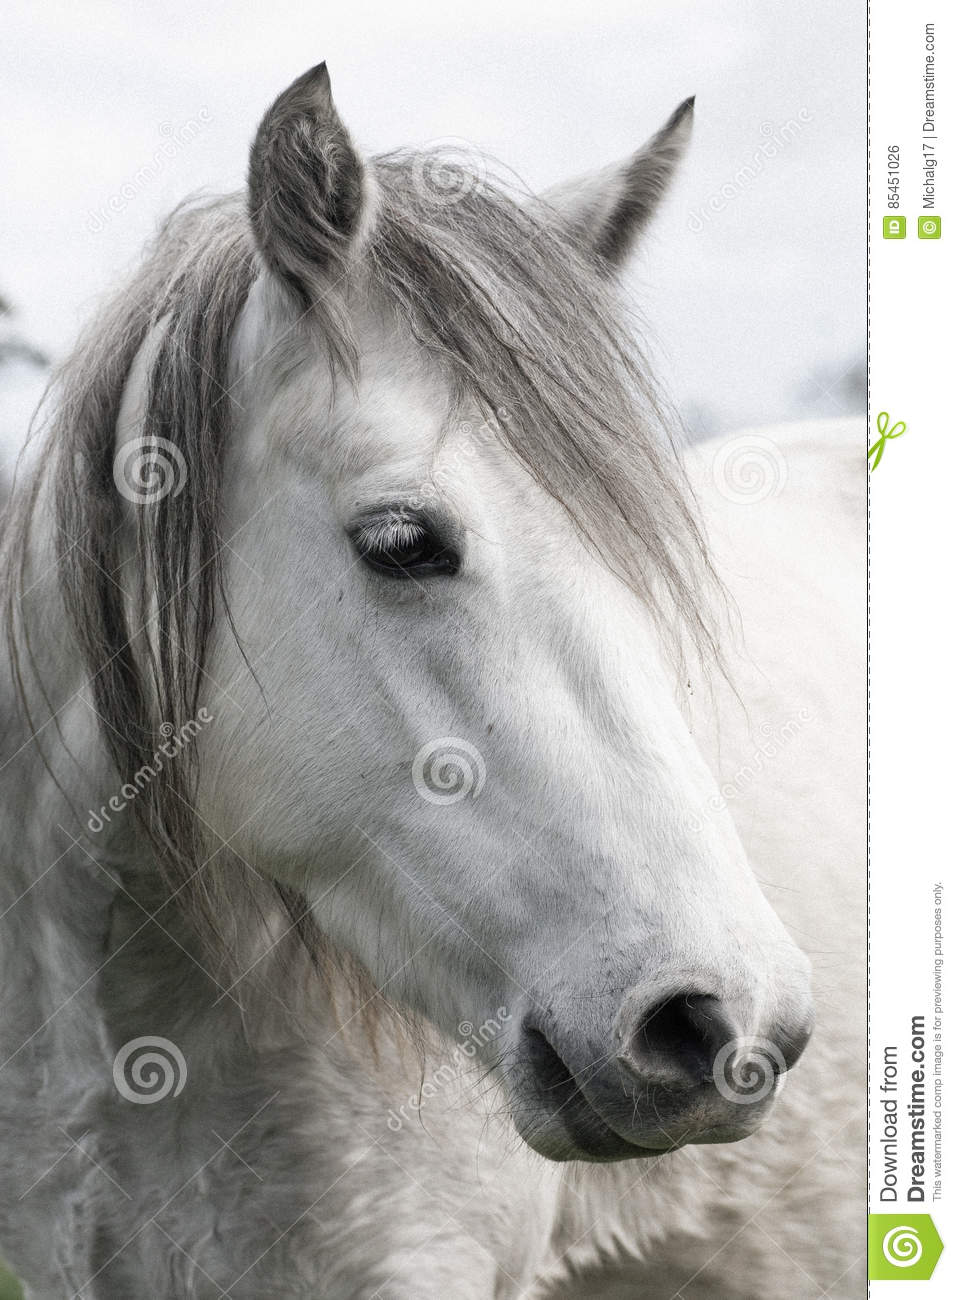 White Horse Head Stock Photo Image Of Horses Animal 85451026